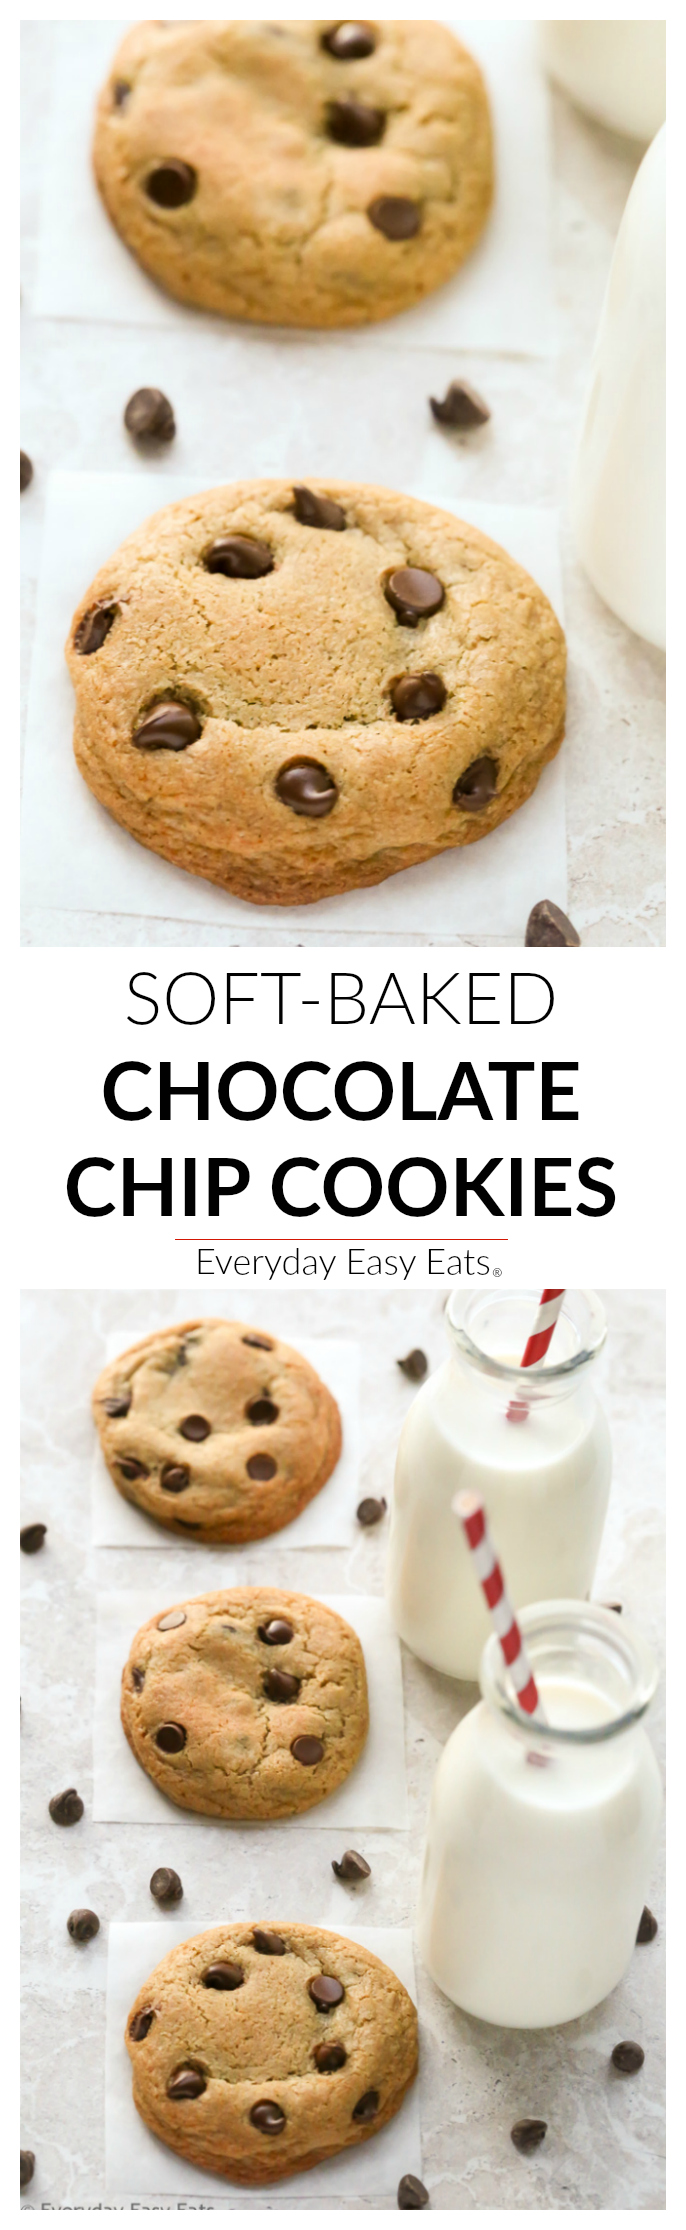 Soft & Chewy Chocolate Chip Cookies | Everyday Easy Eats